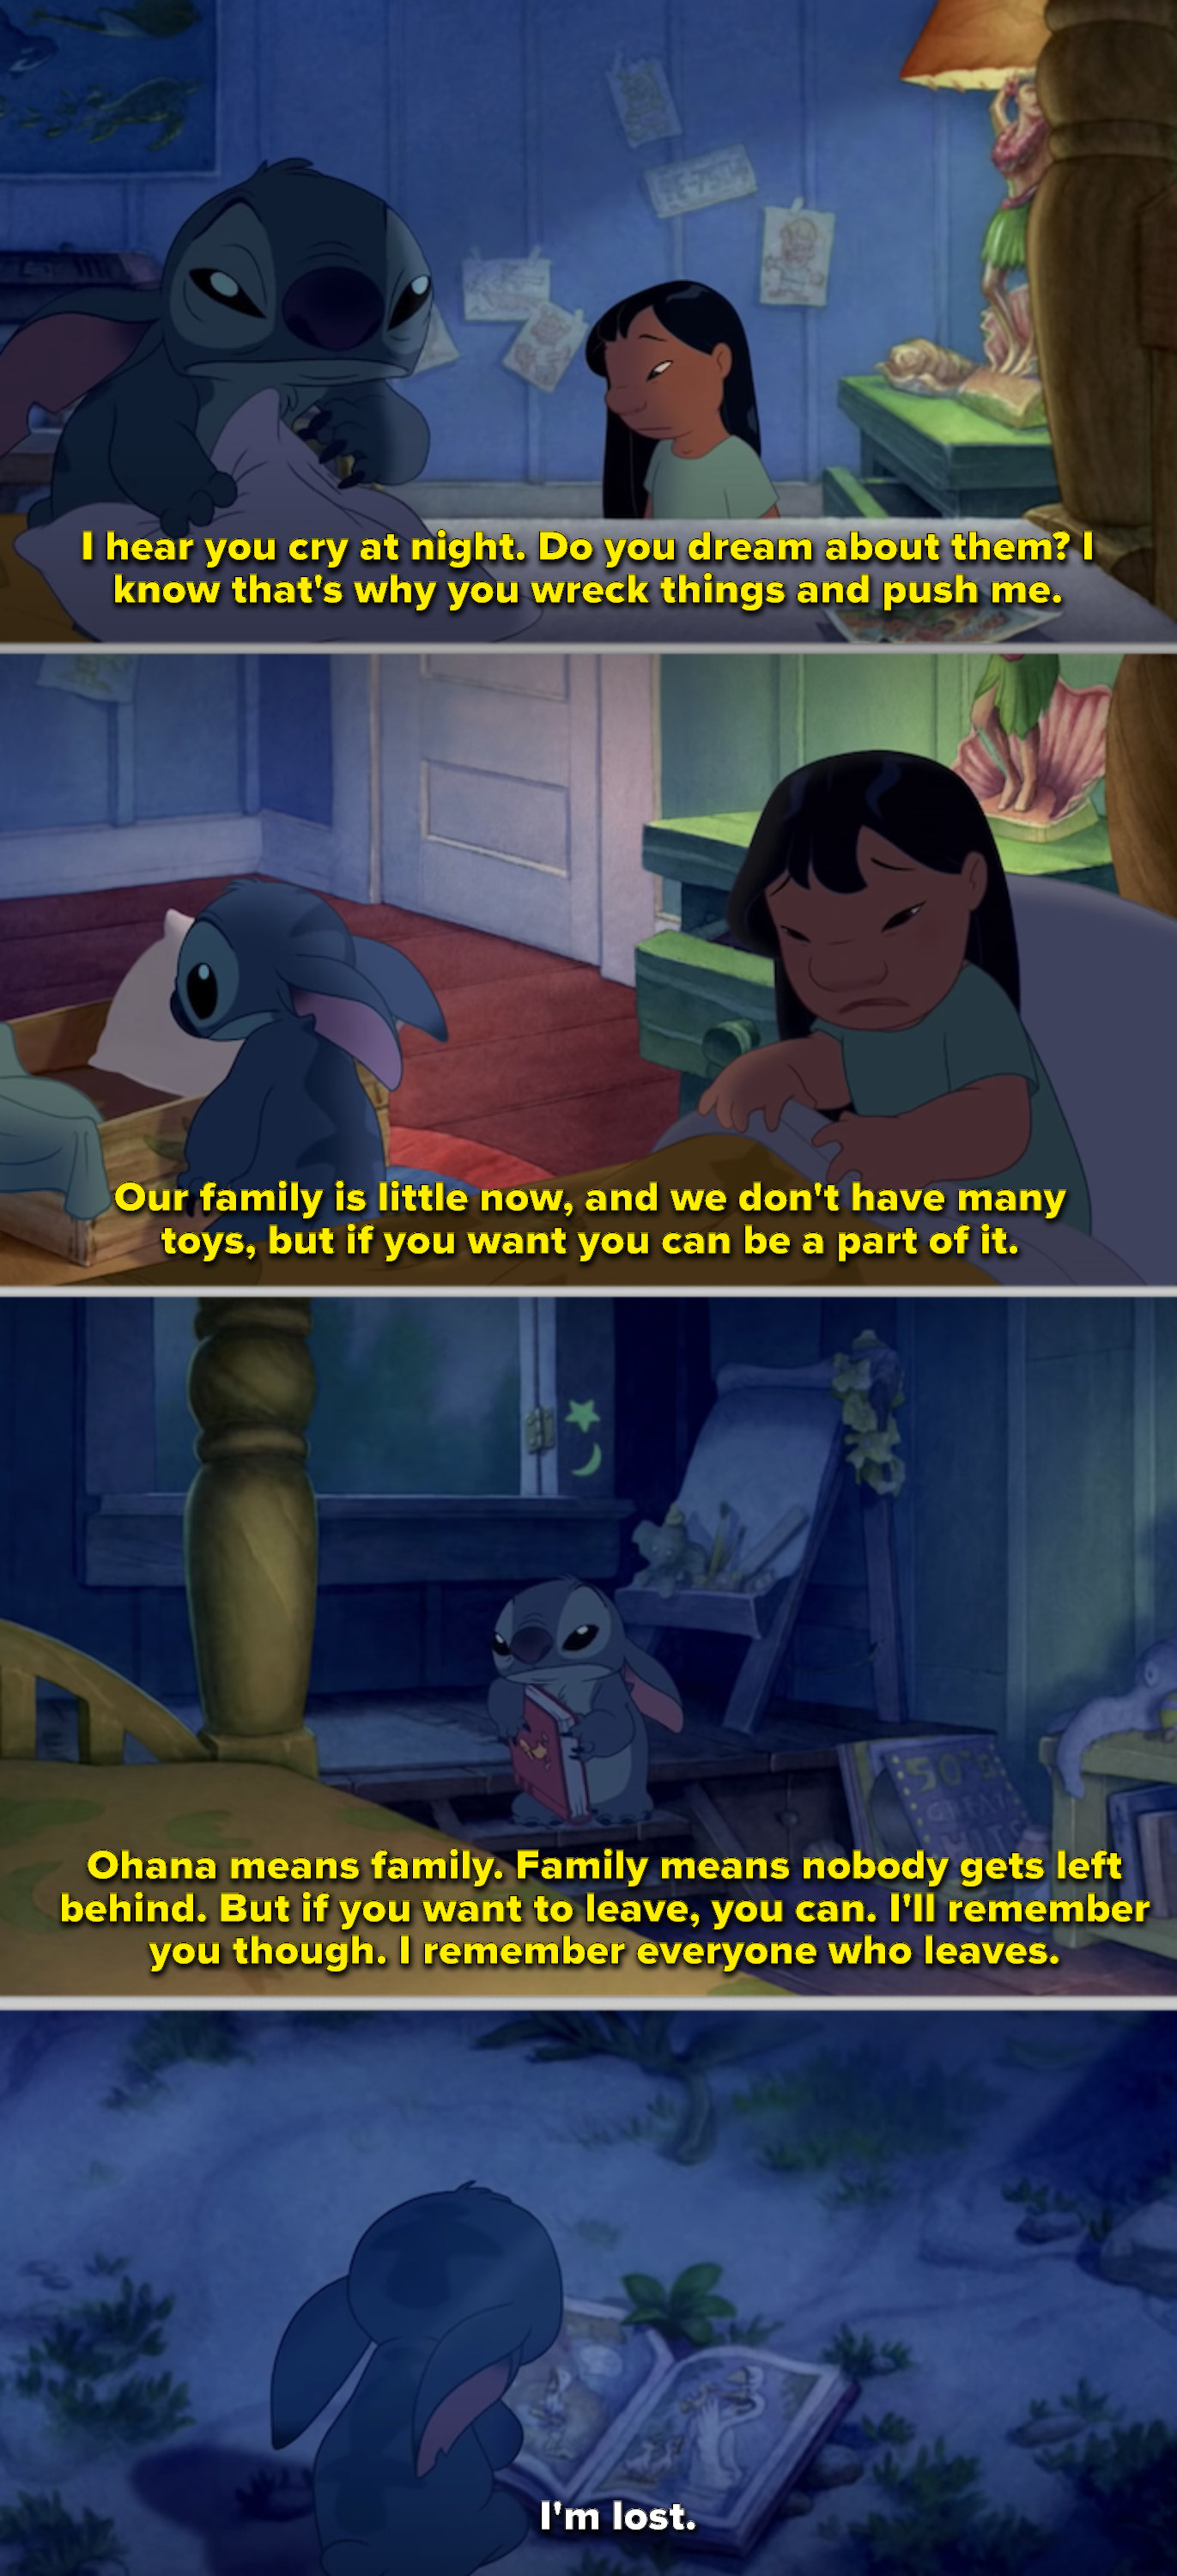 Lilo talking to Stitch in her room